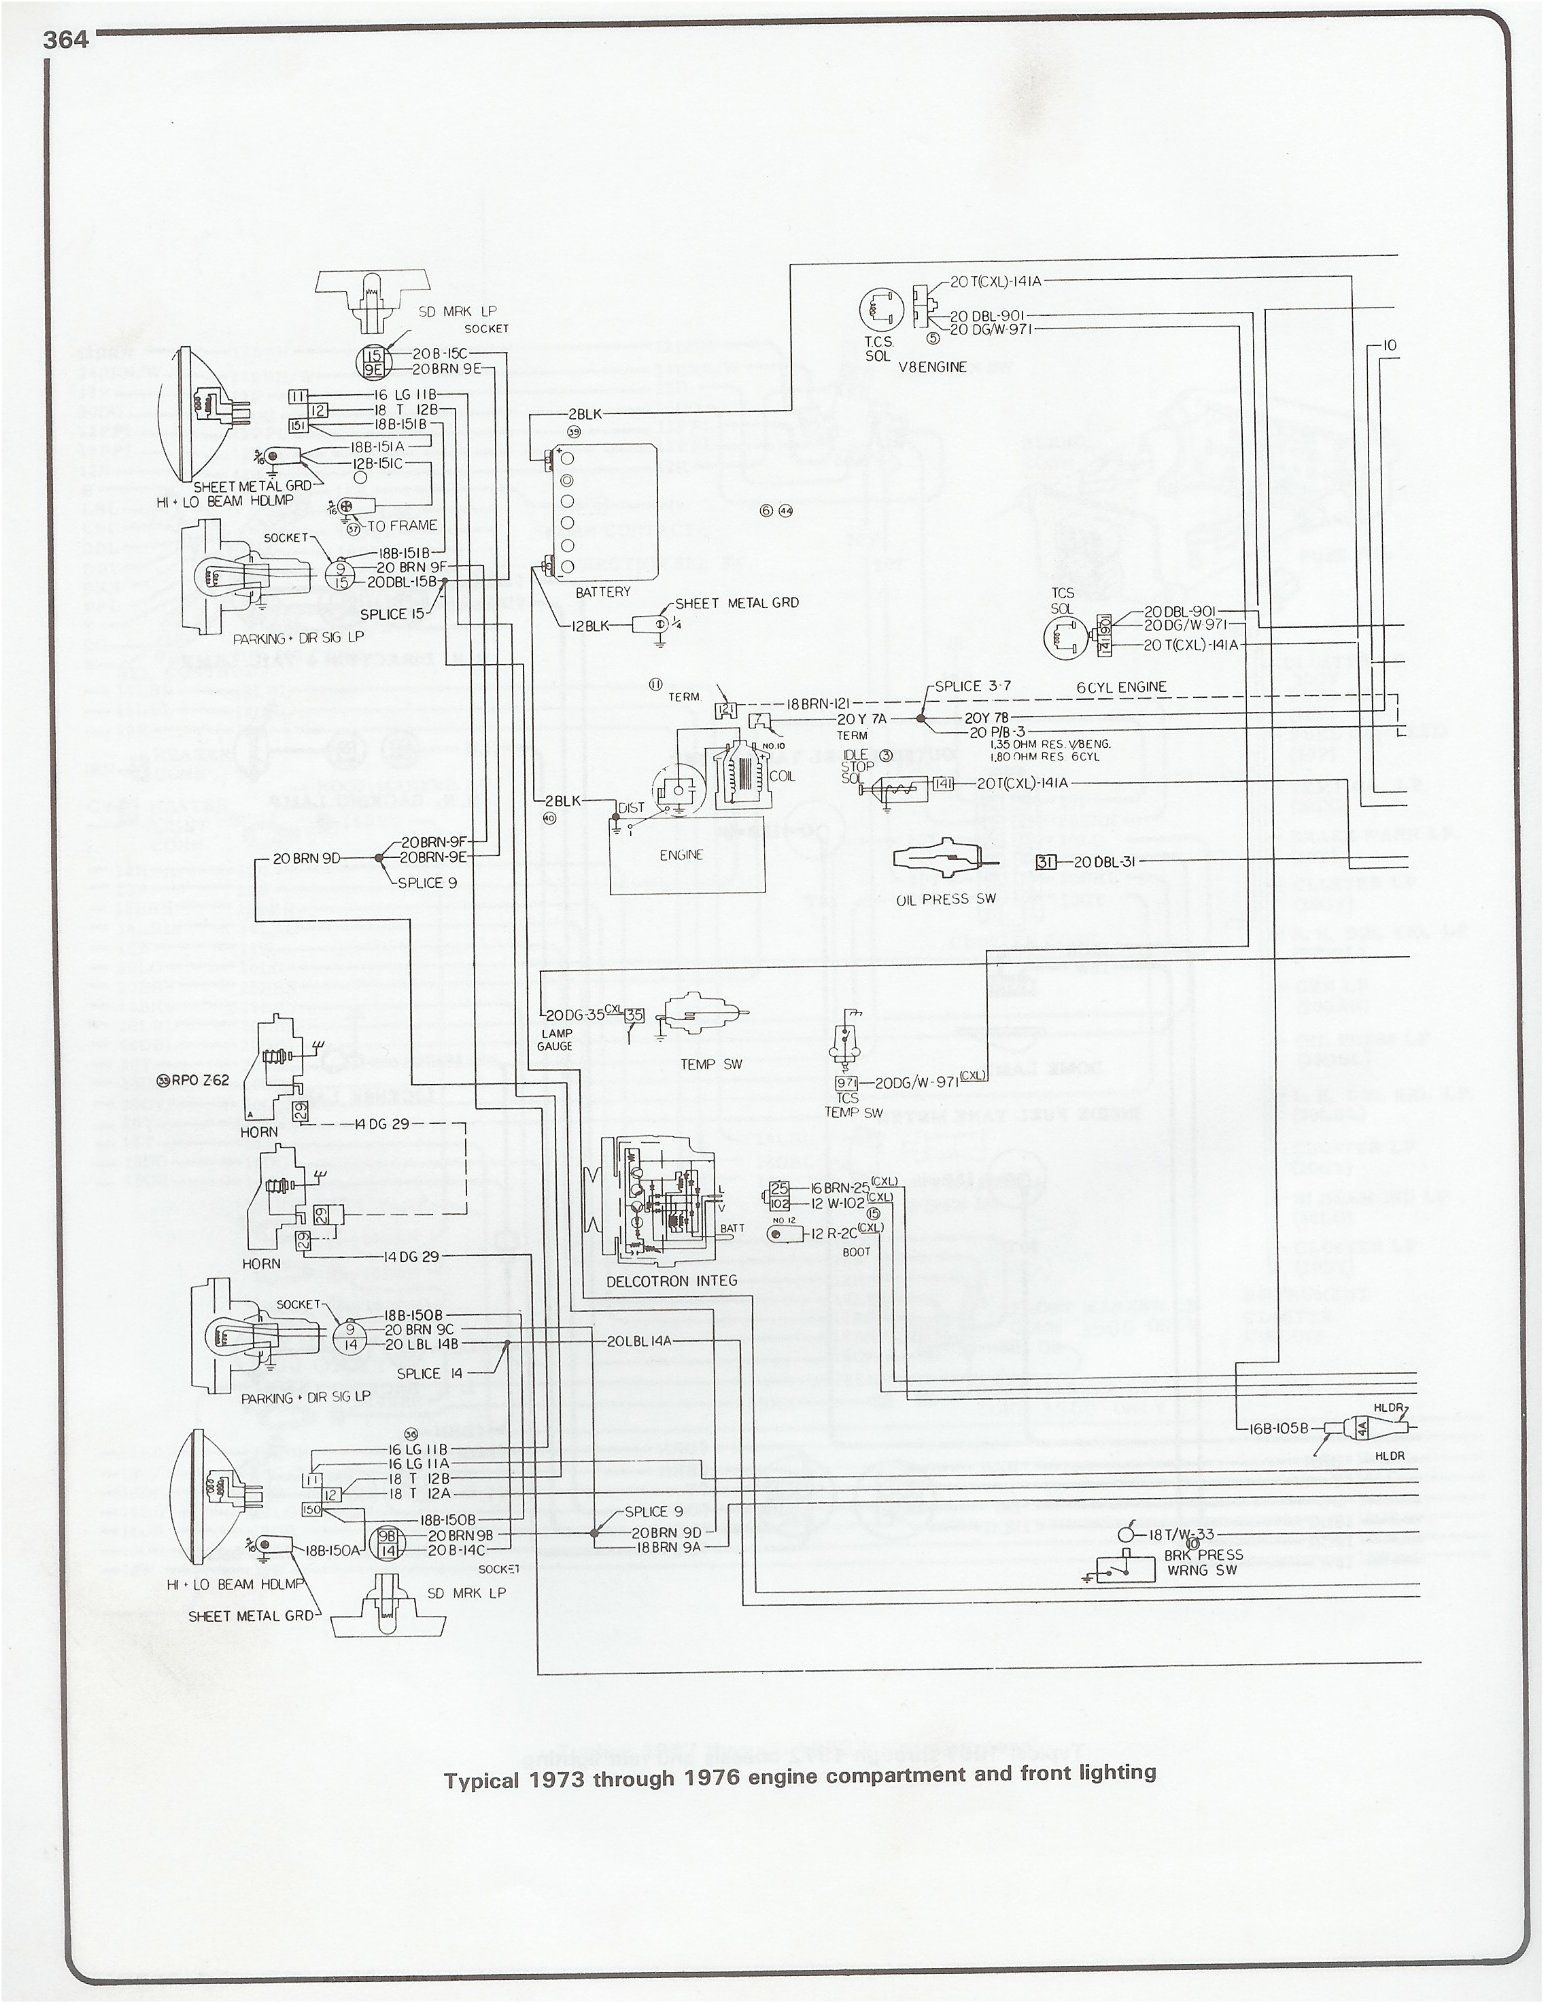 medium resolution of wiring diagram 1973 1976 chevy pickup chevy wiring diagram 1975 chevy nova wiring diagram 1975 chevy wire diagram